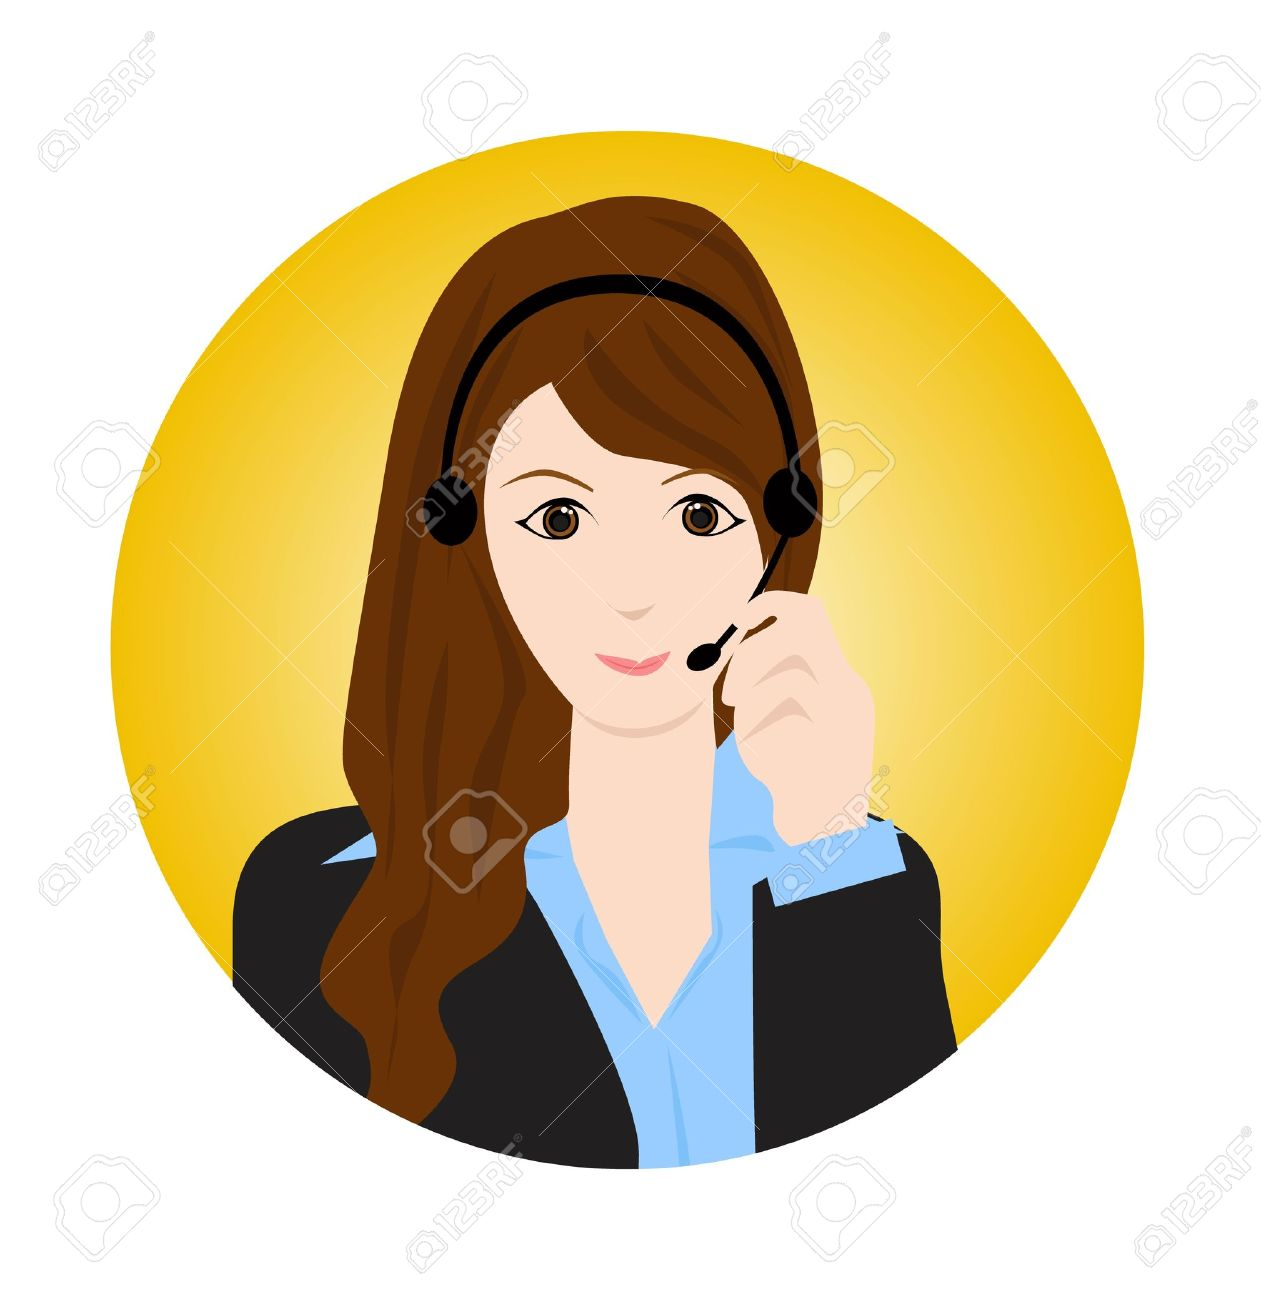 woman customer service royalty free cliparts vectors and stock rh 123rf com customer service clipart free customer service clipart images free